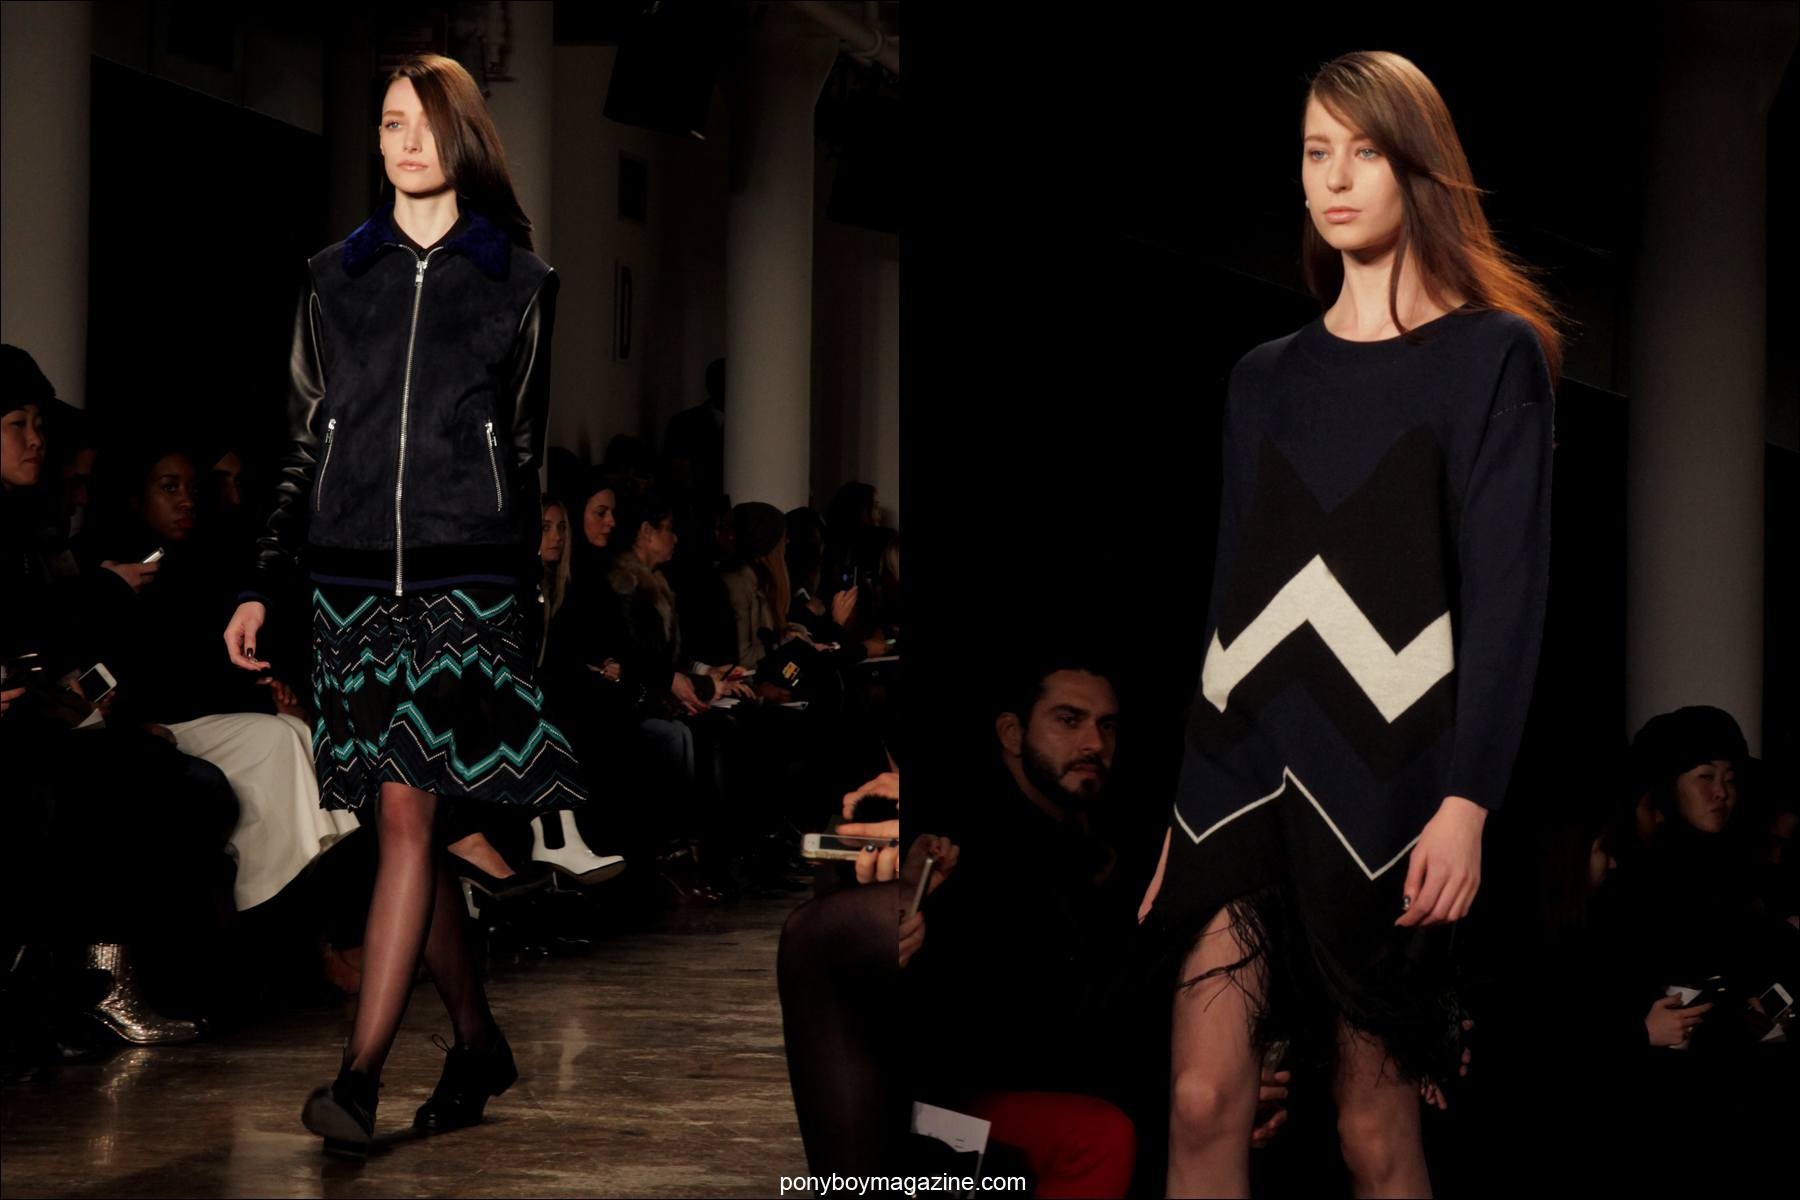 Young models on the runway for Timo Weiland Autumn/Winter 2014 Collection. Photographed at New York City's Milk Studios by Alexander Thompson.